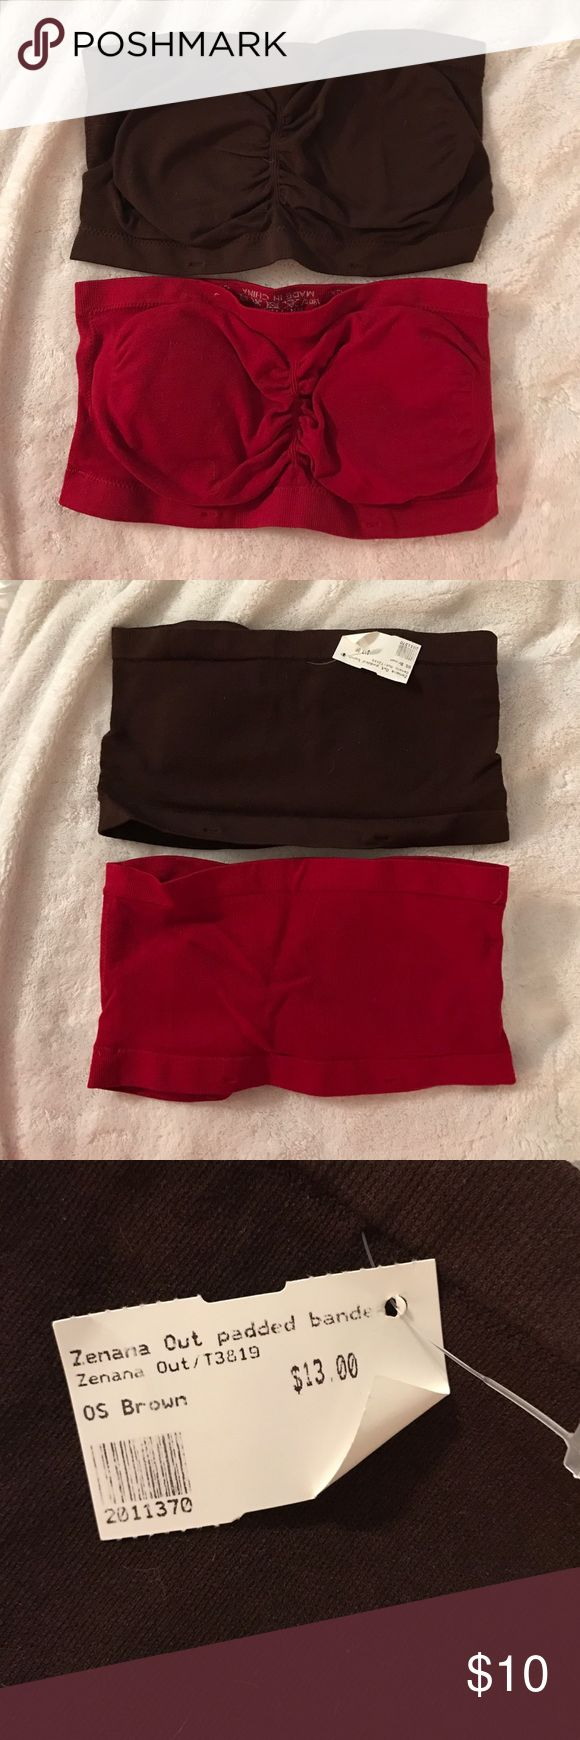 Bandeau bra set of 2 Brown is new with tags and the red is new without tags. Both have padding that is removable Intimates & Sleepwear Bandeaus